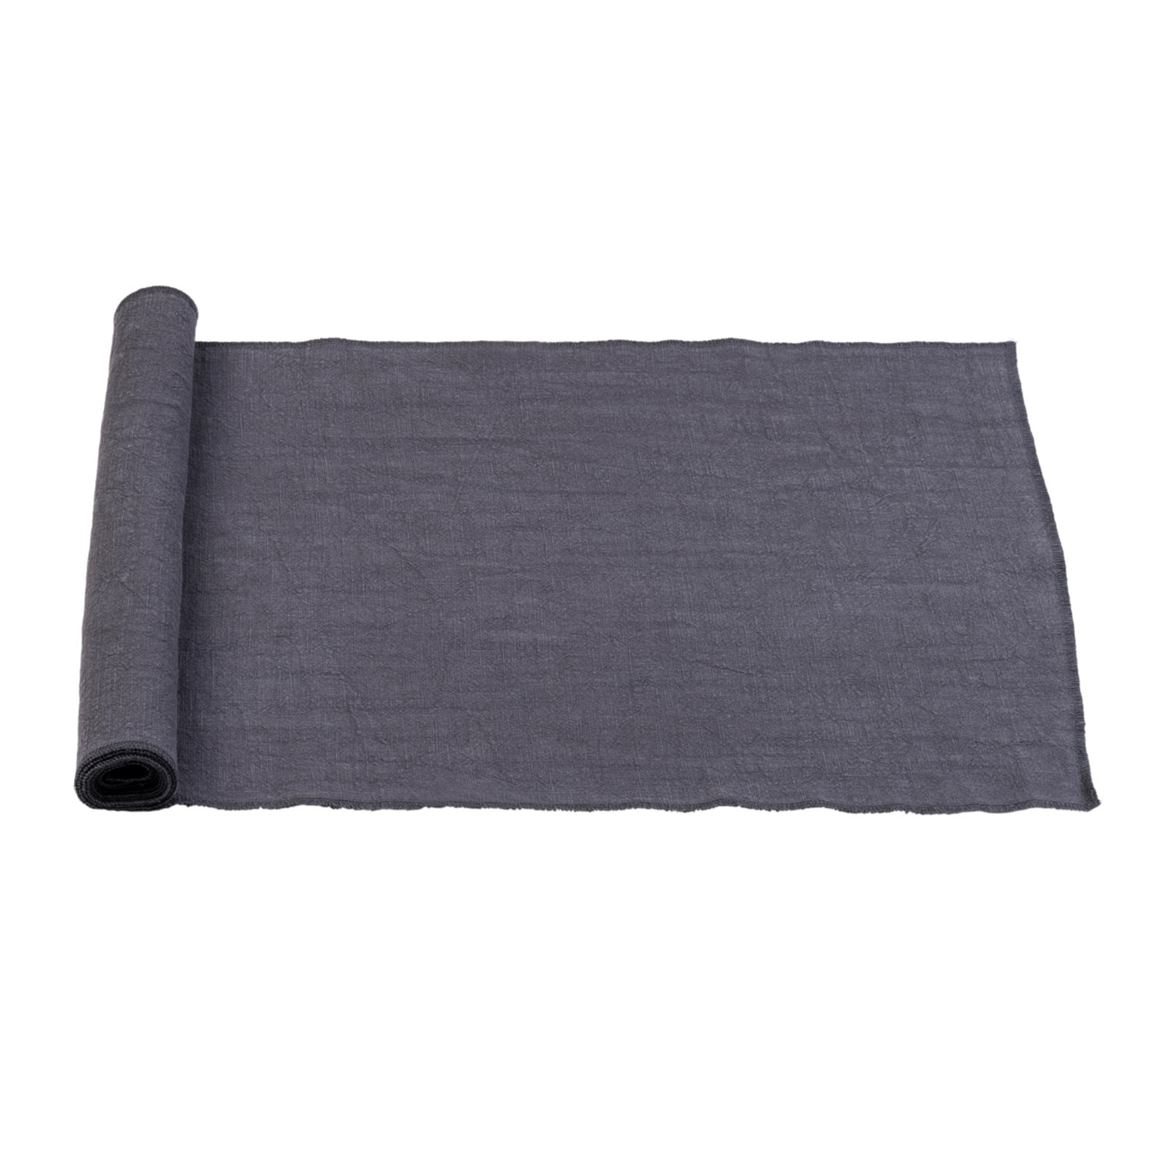 LUXALIN  Chemin de table gris foncé Larg. 42 x Long. 150 cm_luxalin--chemin-de-table-gris-foncé-larg--42-x-long--150-cm